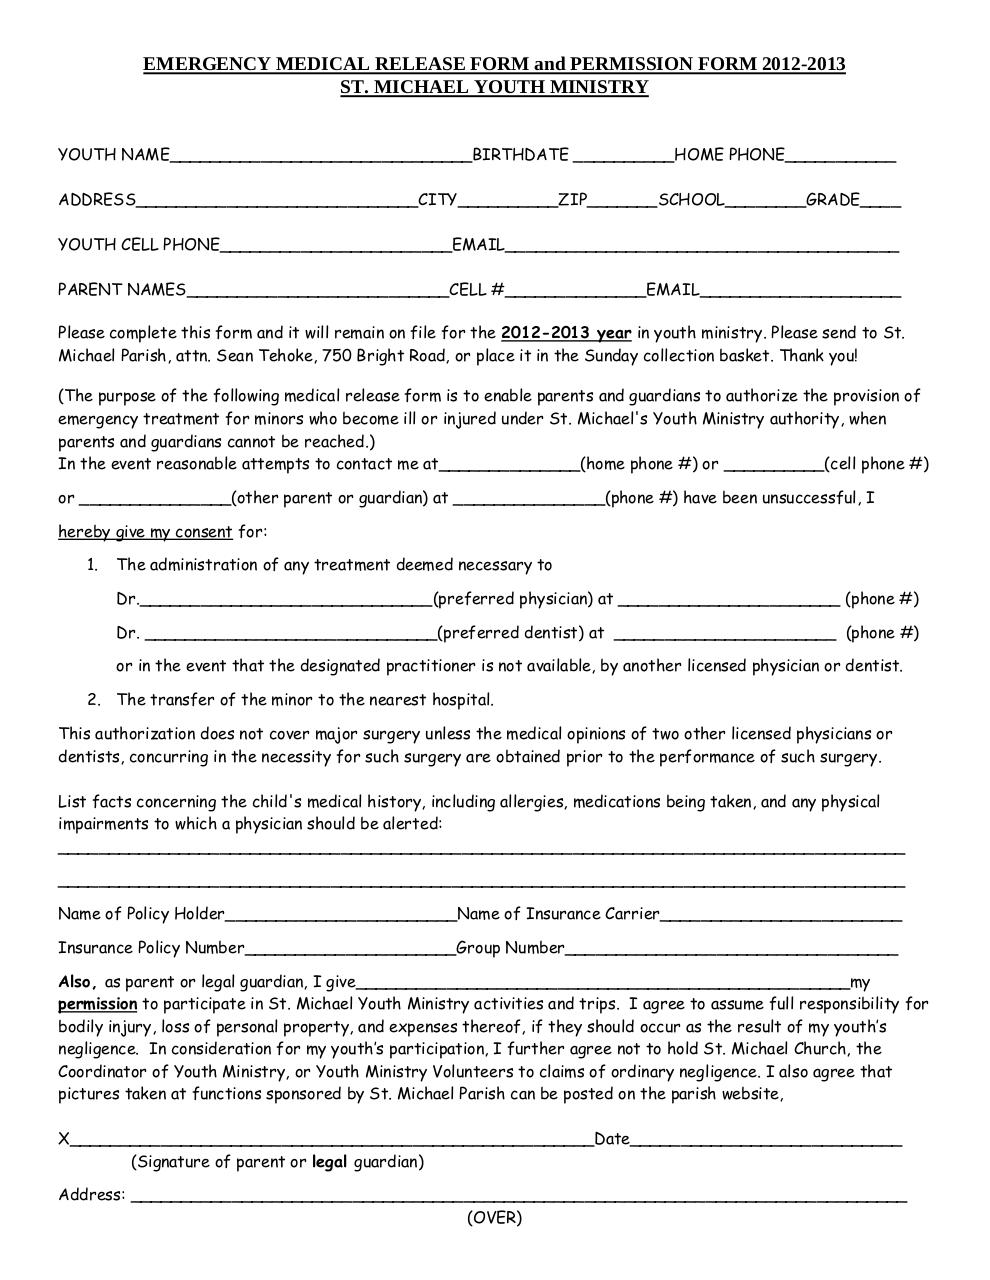 Emergency Medical Form EmformPdf  Pdf Archive